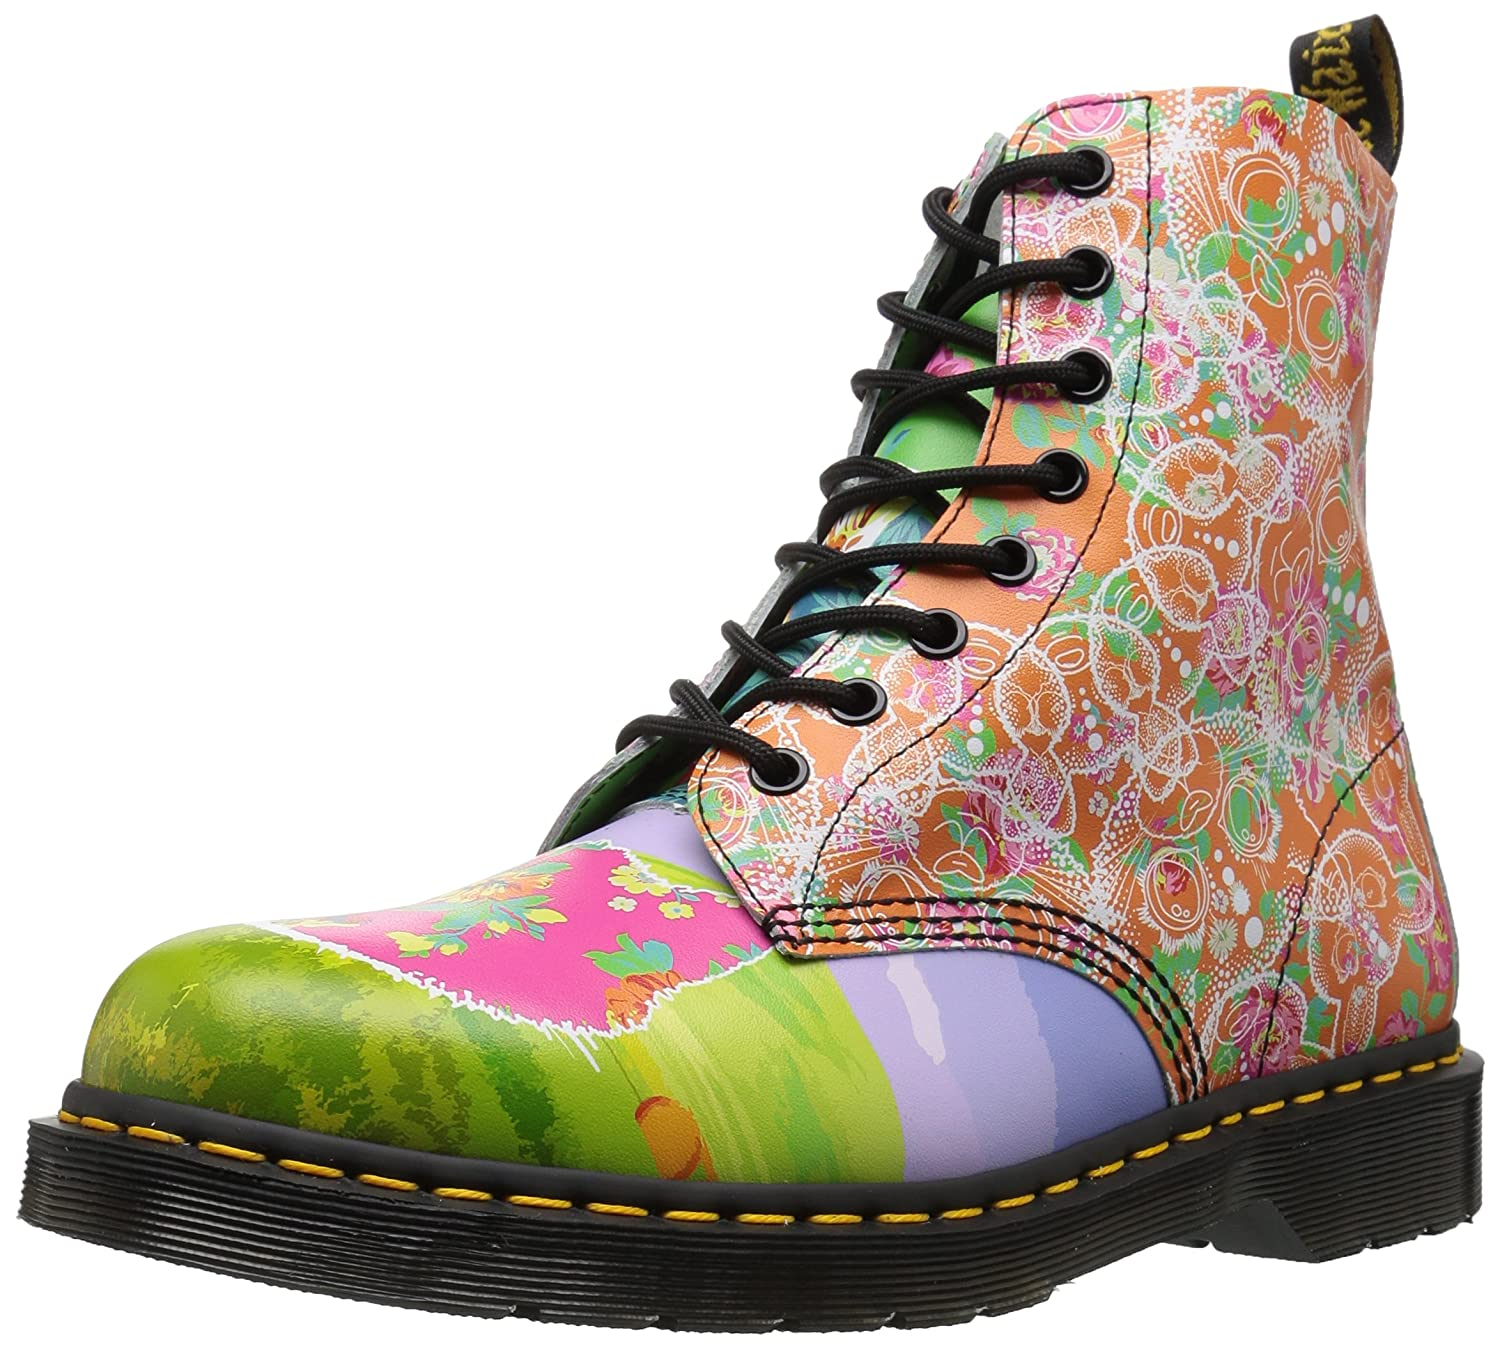 Dr. Martens Women's Pascal Daze in Backhand Leather Fashion Boot B01MU5QXHK 5 Medium UK (7 US)|Multi Daze